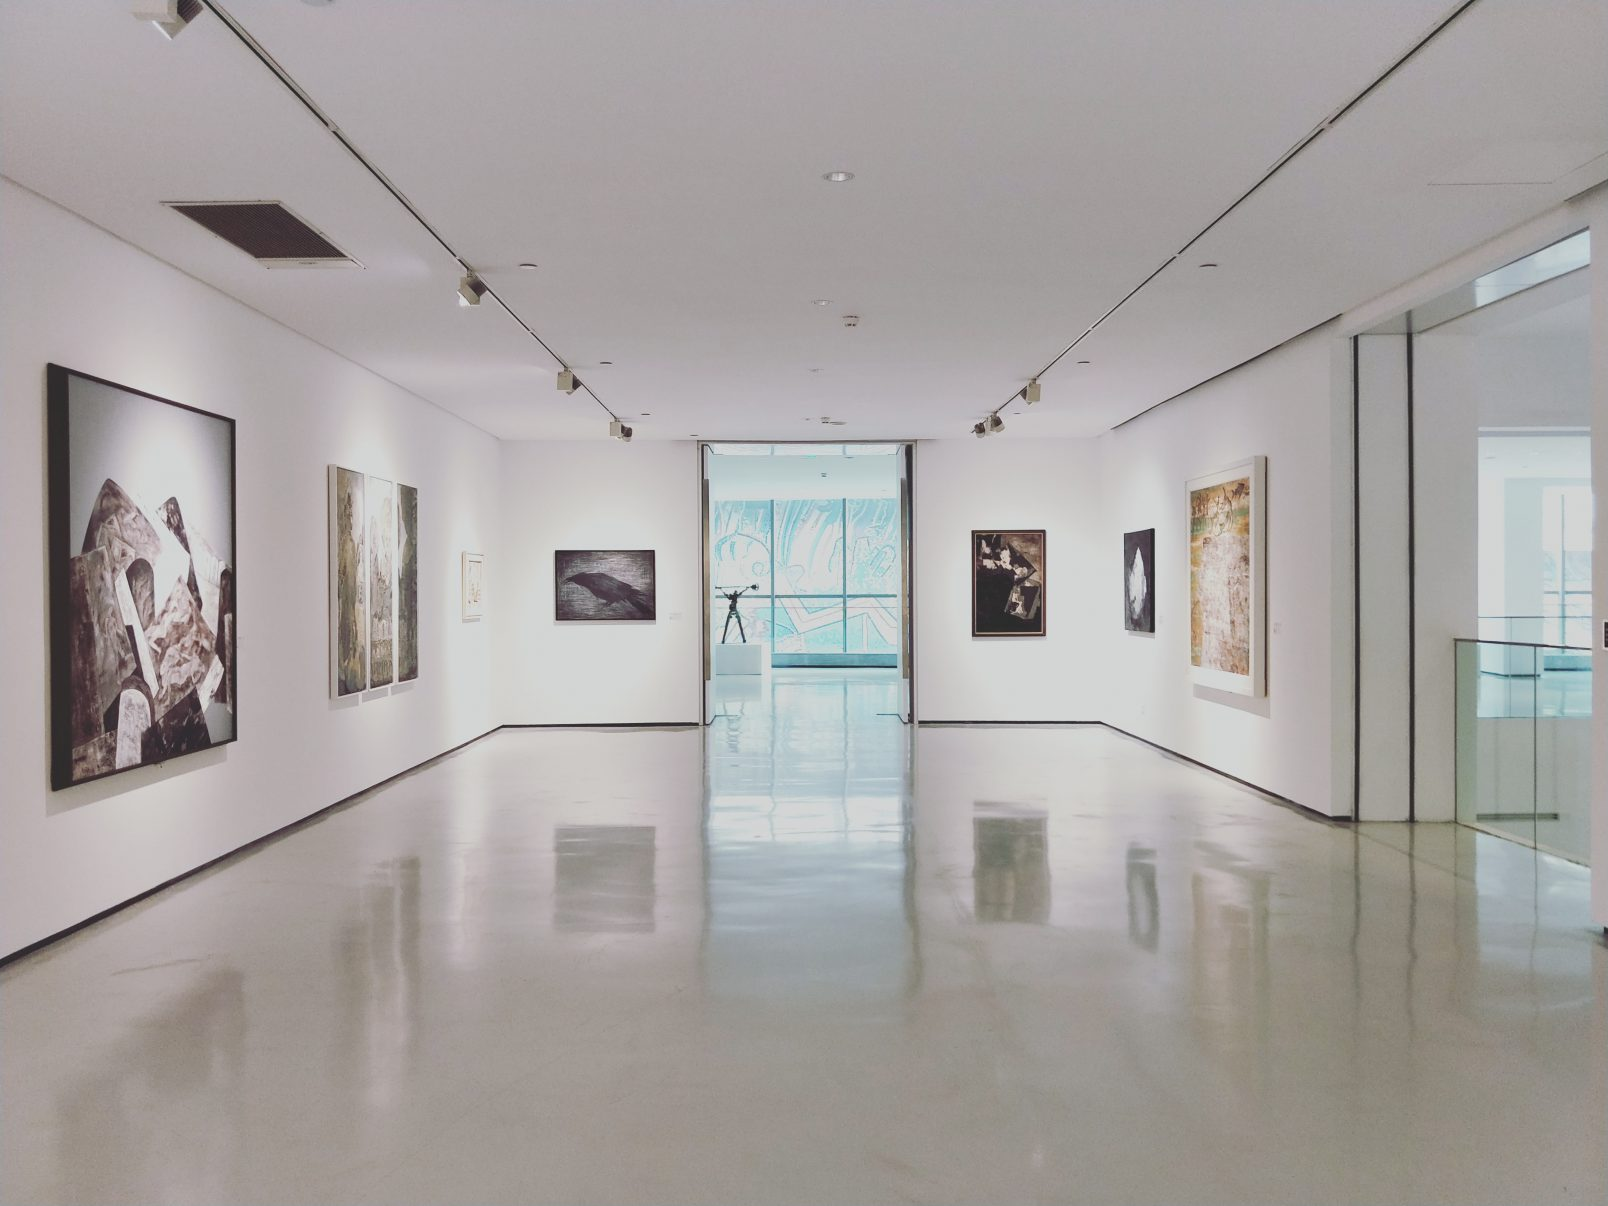 Want to Be Involved in the Art Loop Open Spring Exhibition? This Post's for You